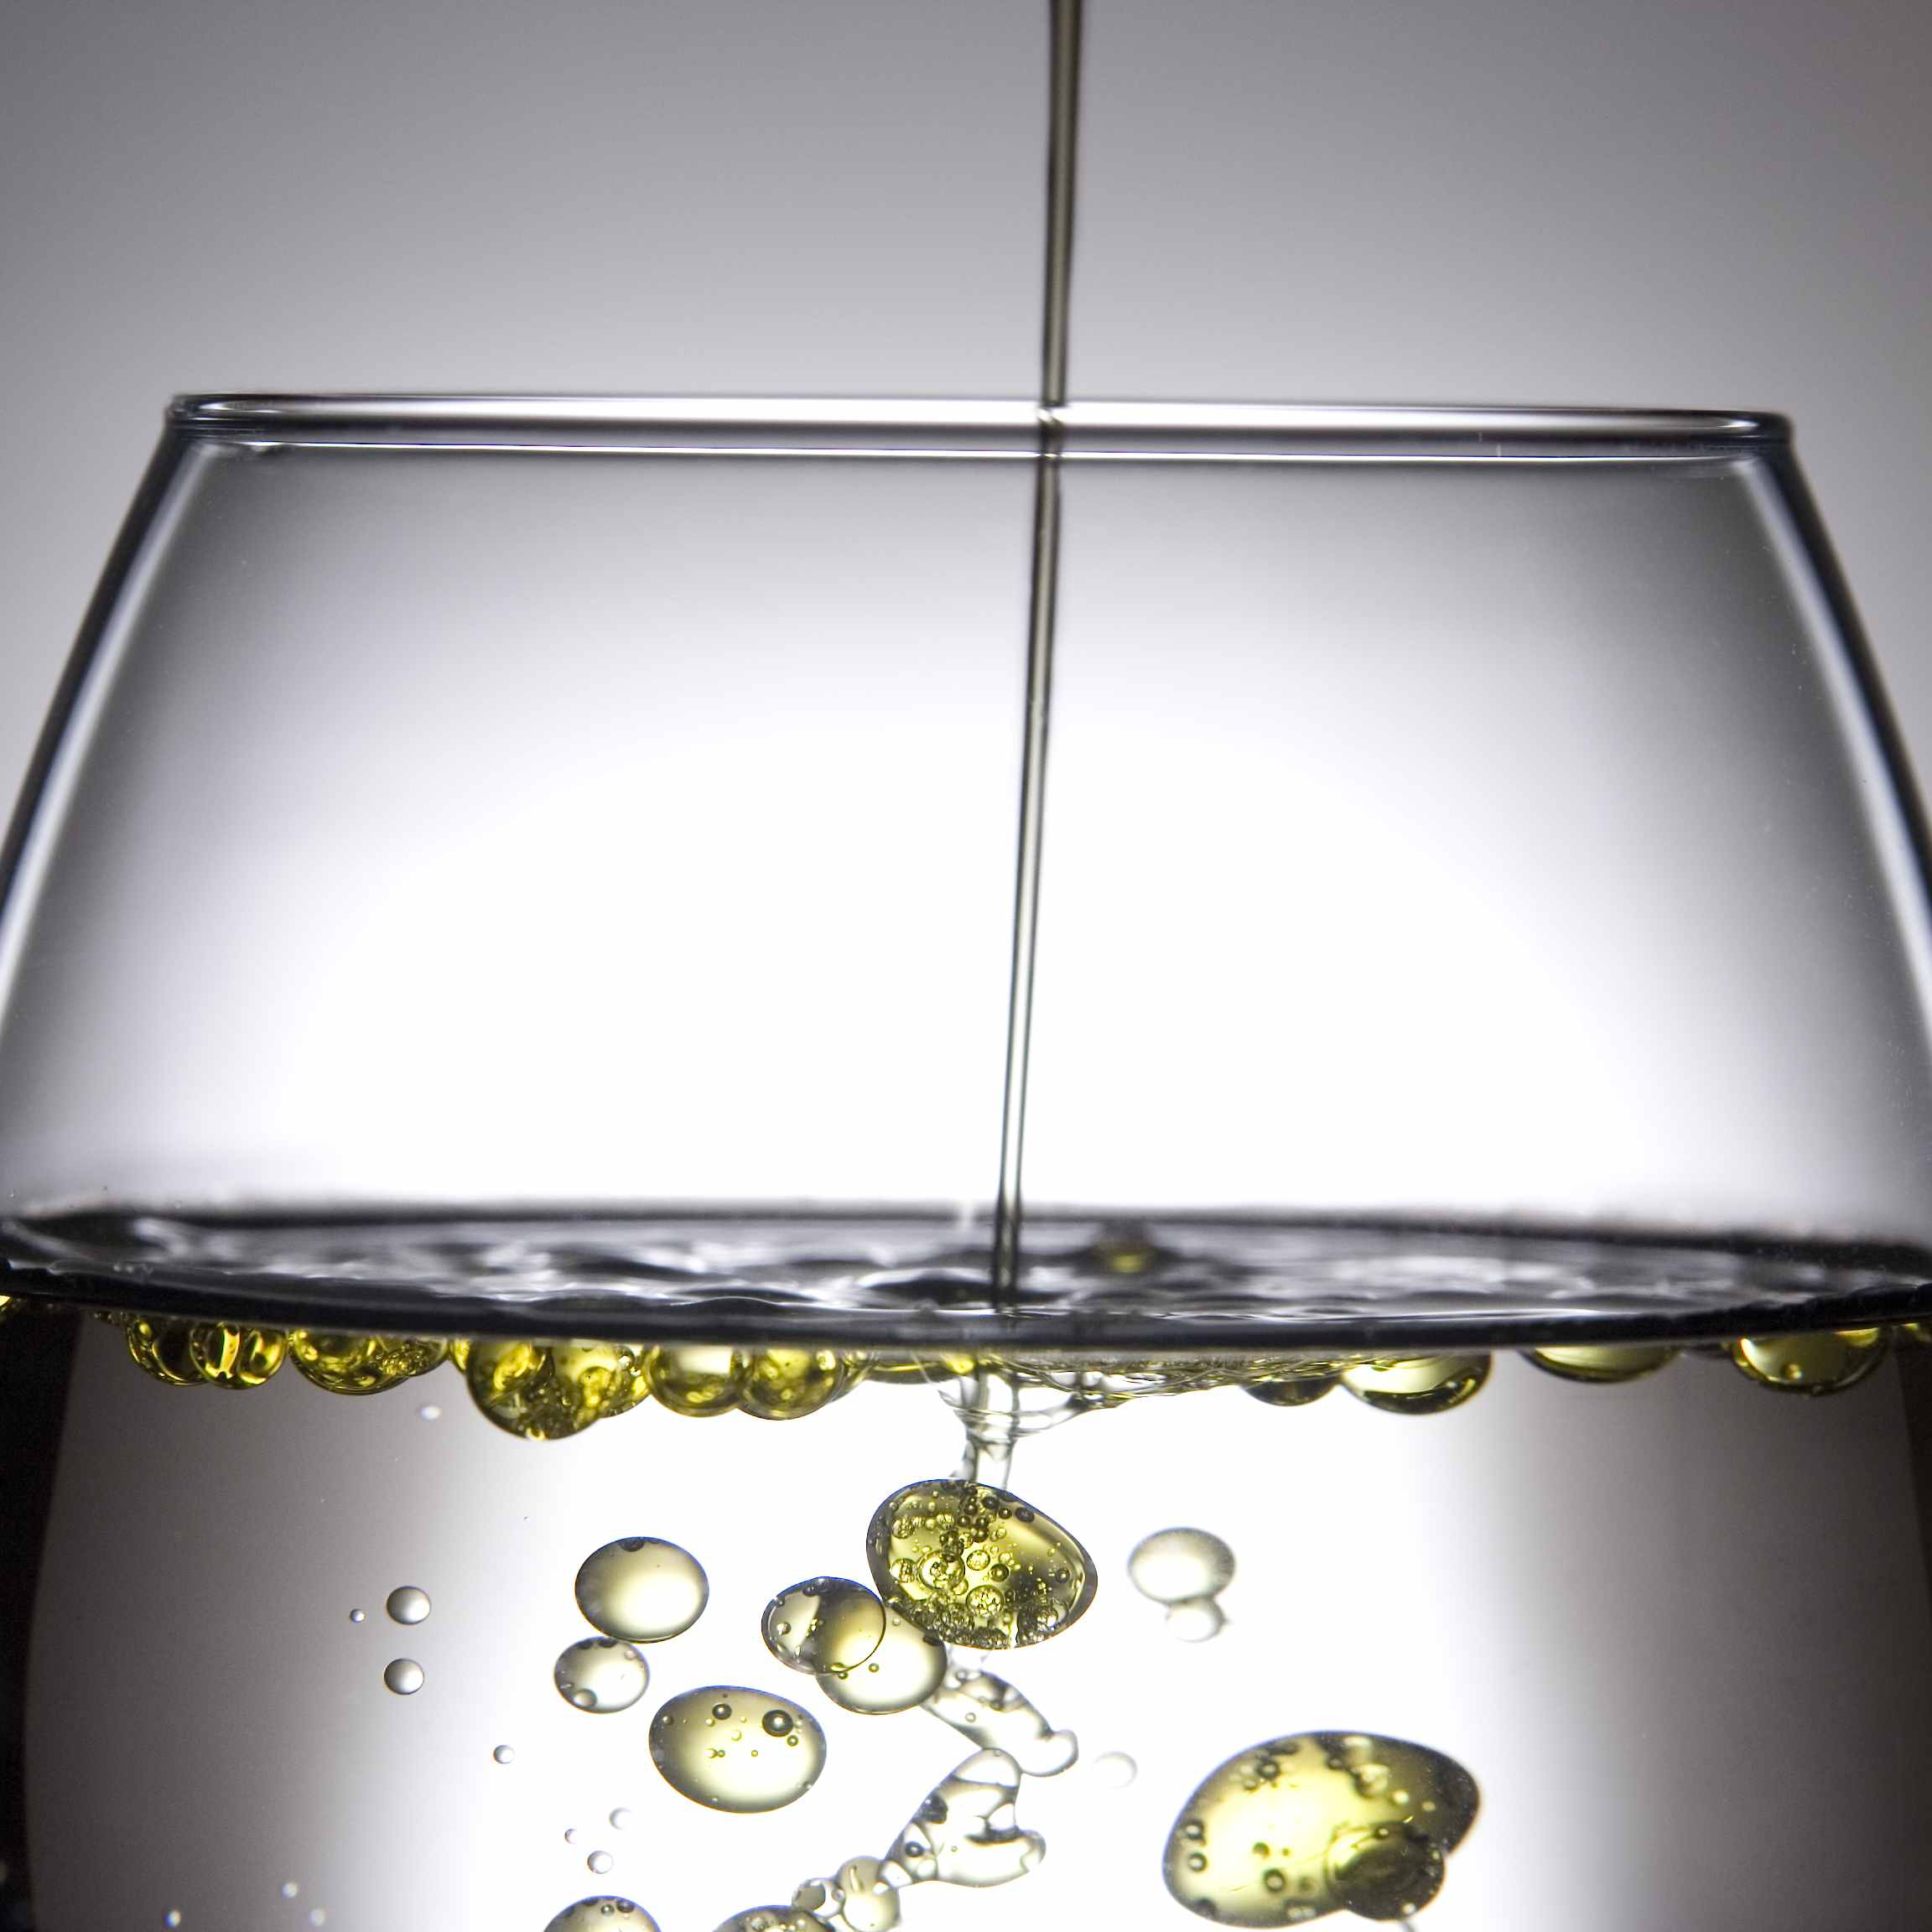 Fluids that don't mix are said to be immiscible.